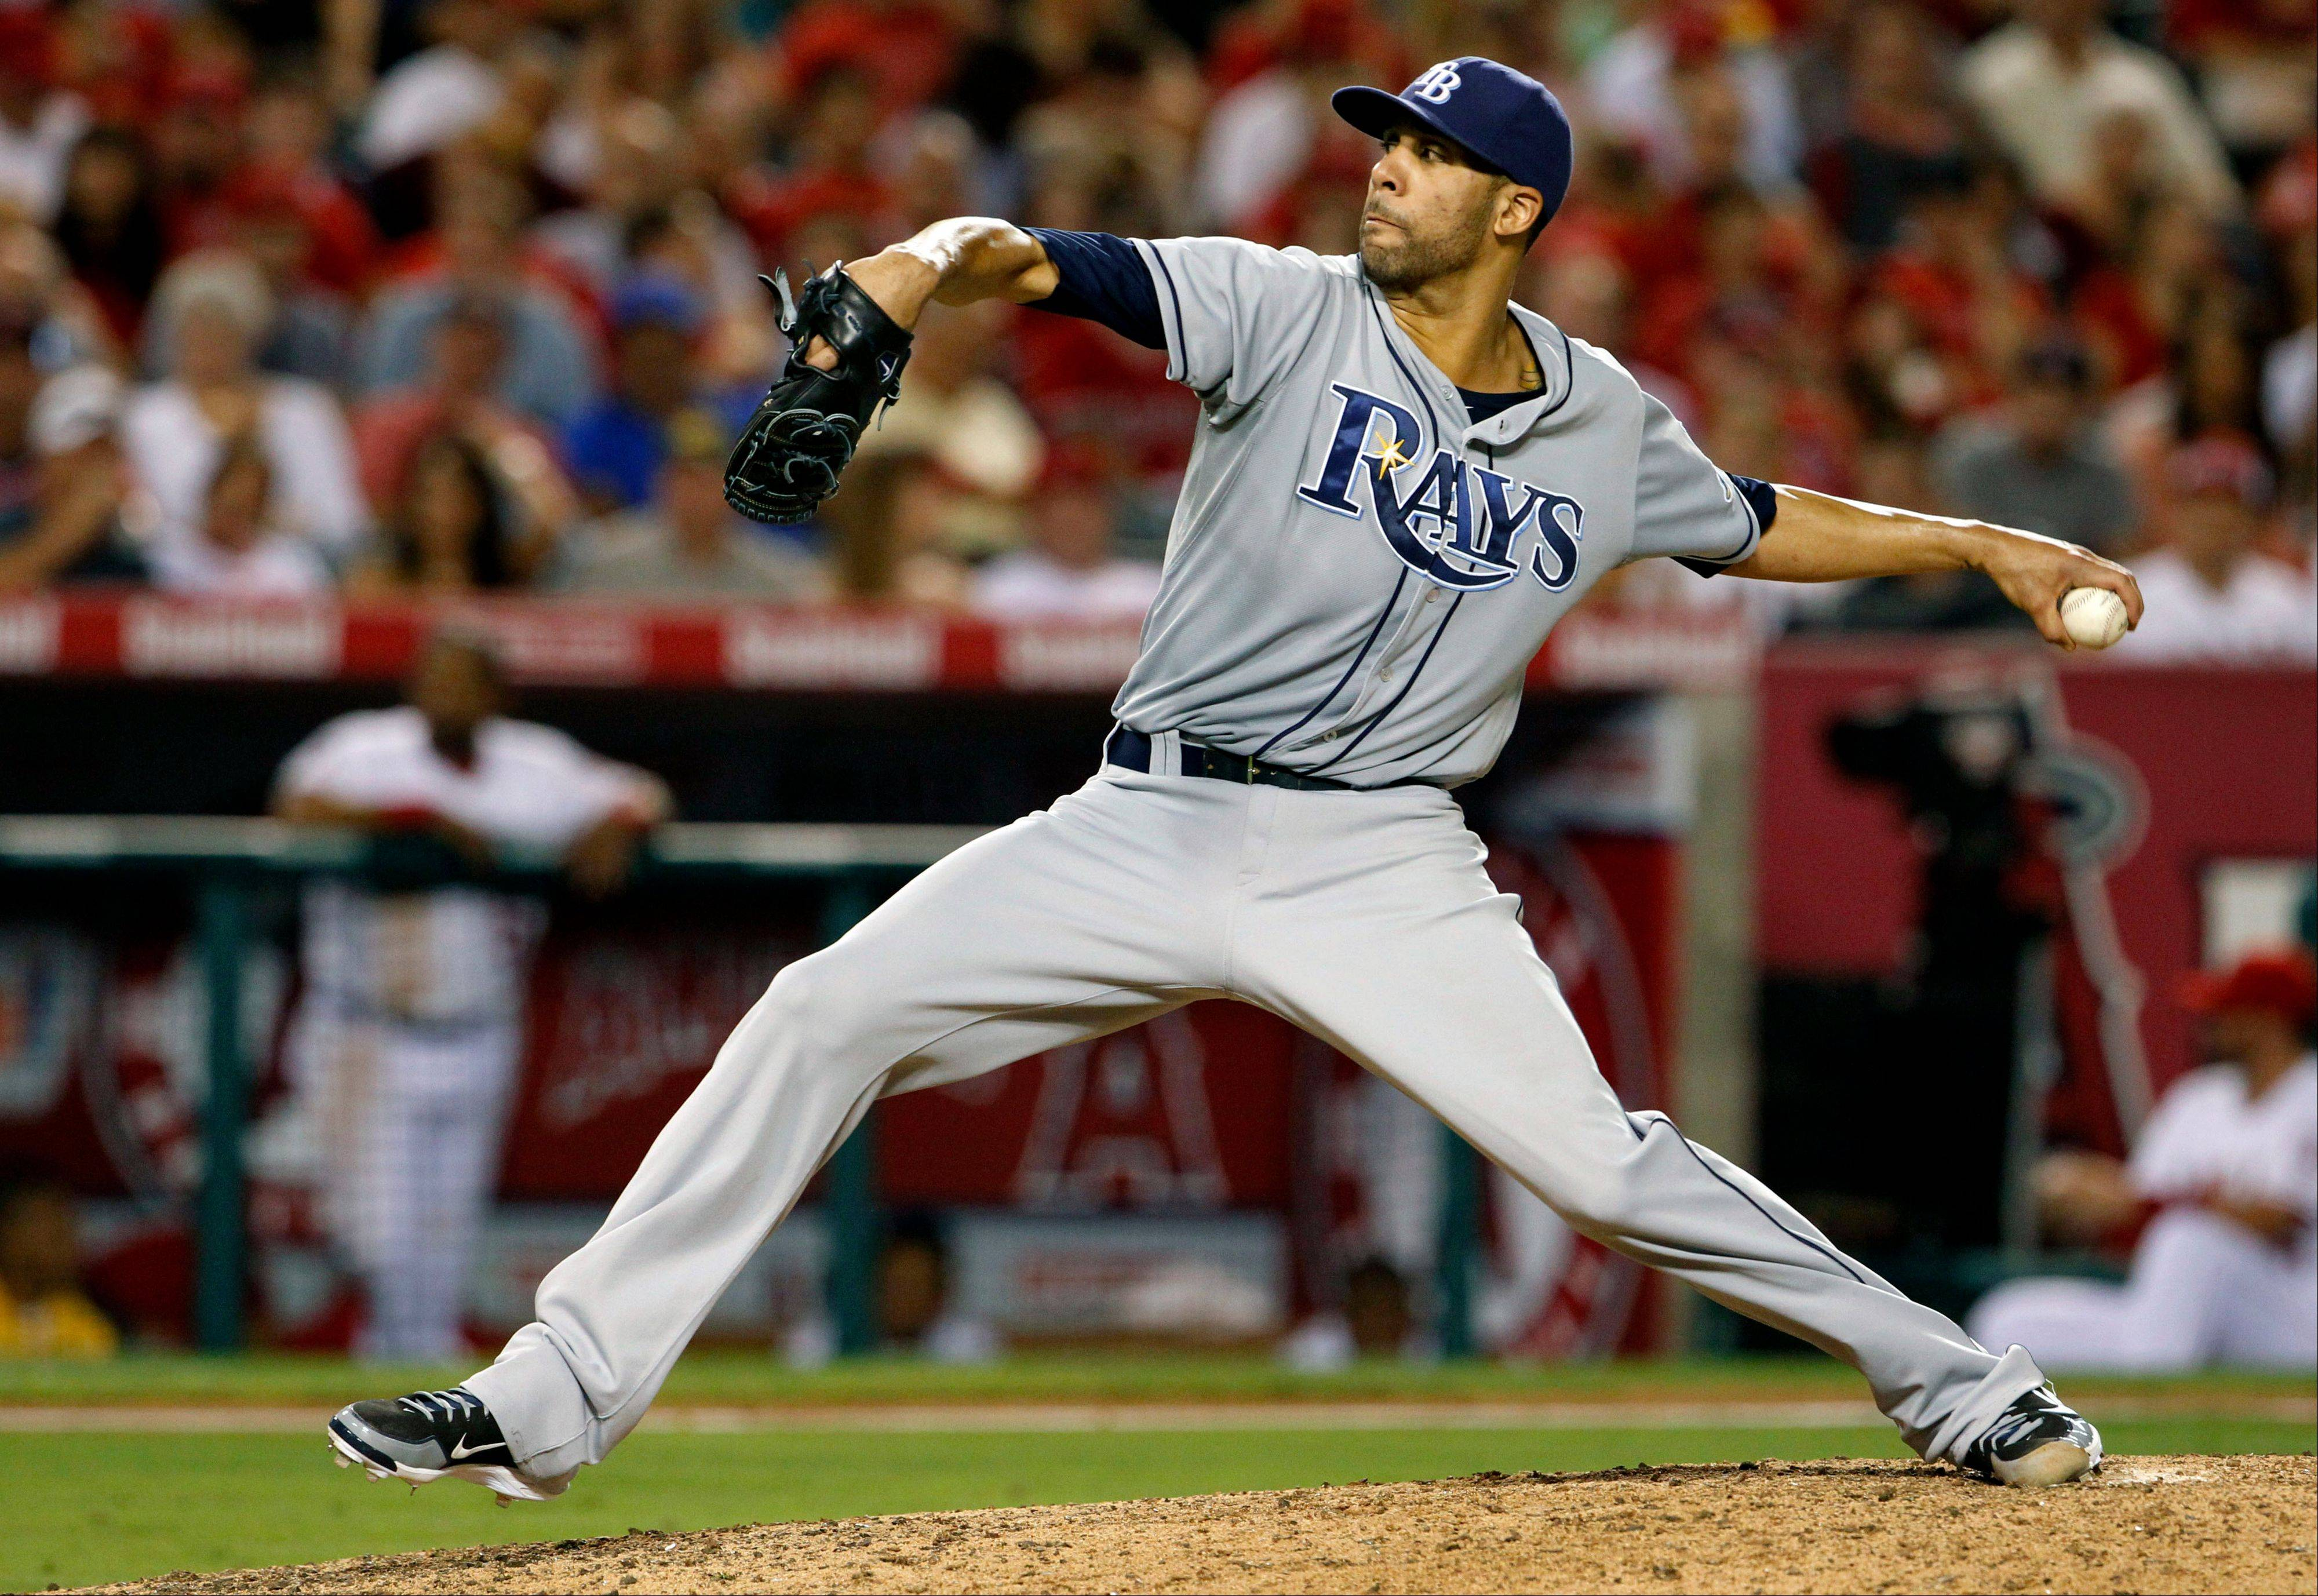 Tampa Bay Rays pitcher David Price struck out eight, walked two and lowered his ERA to 2.39 on Thursday in a road win over Anaheim.